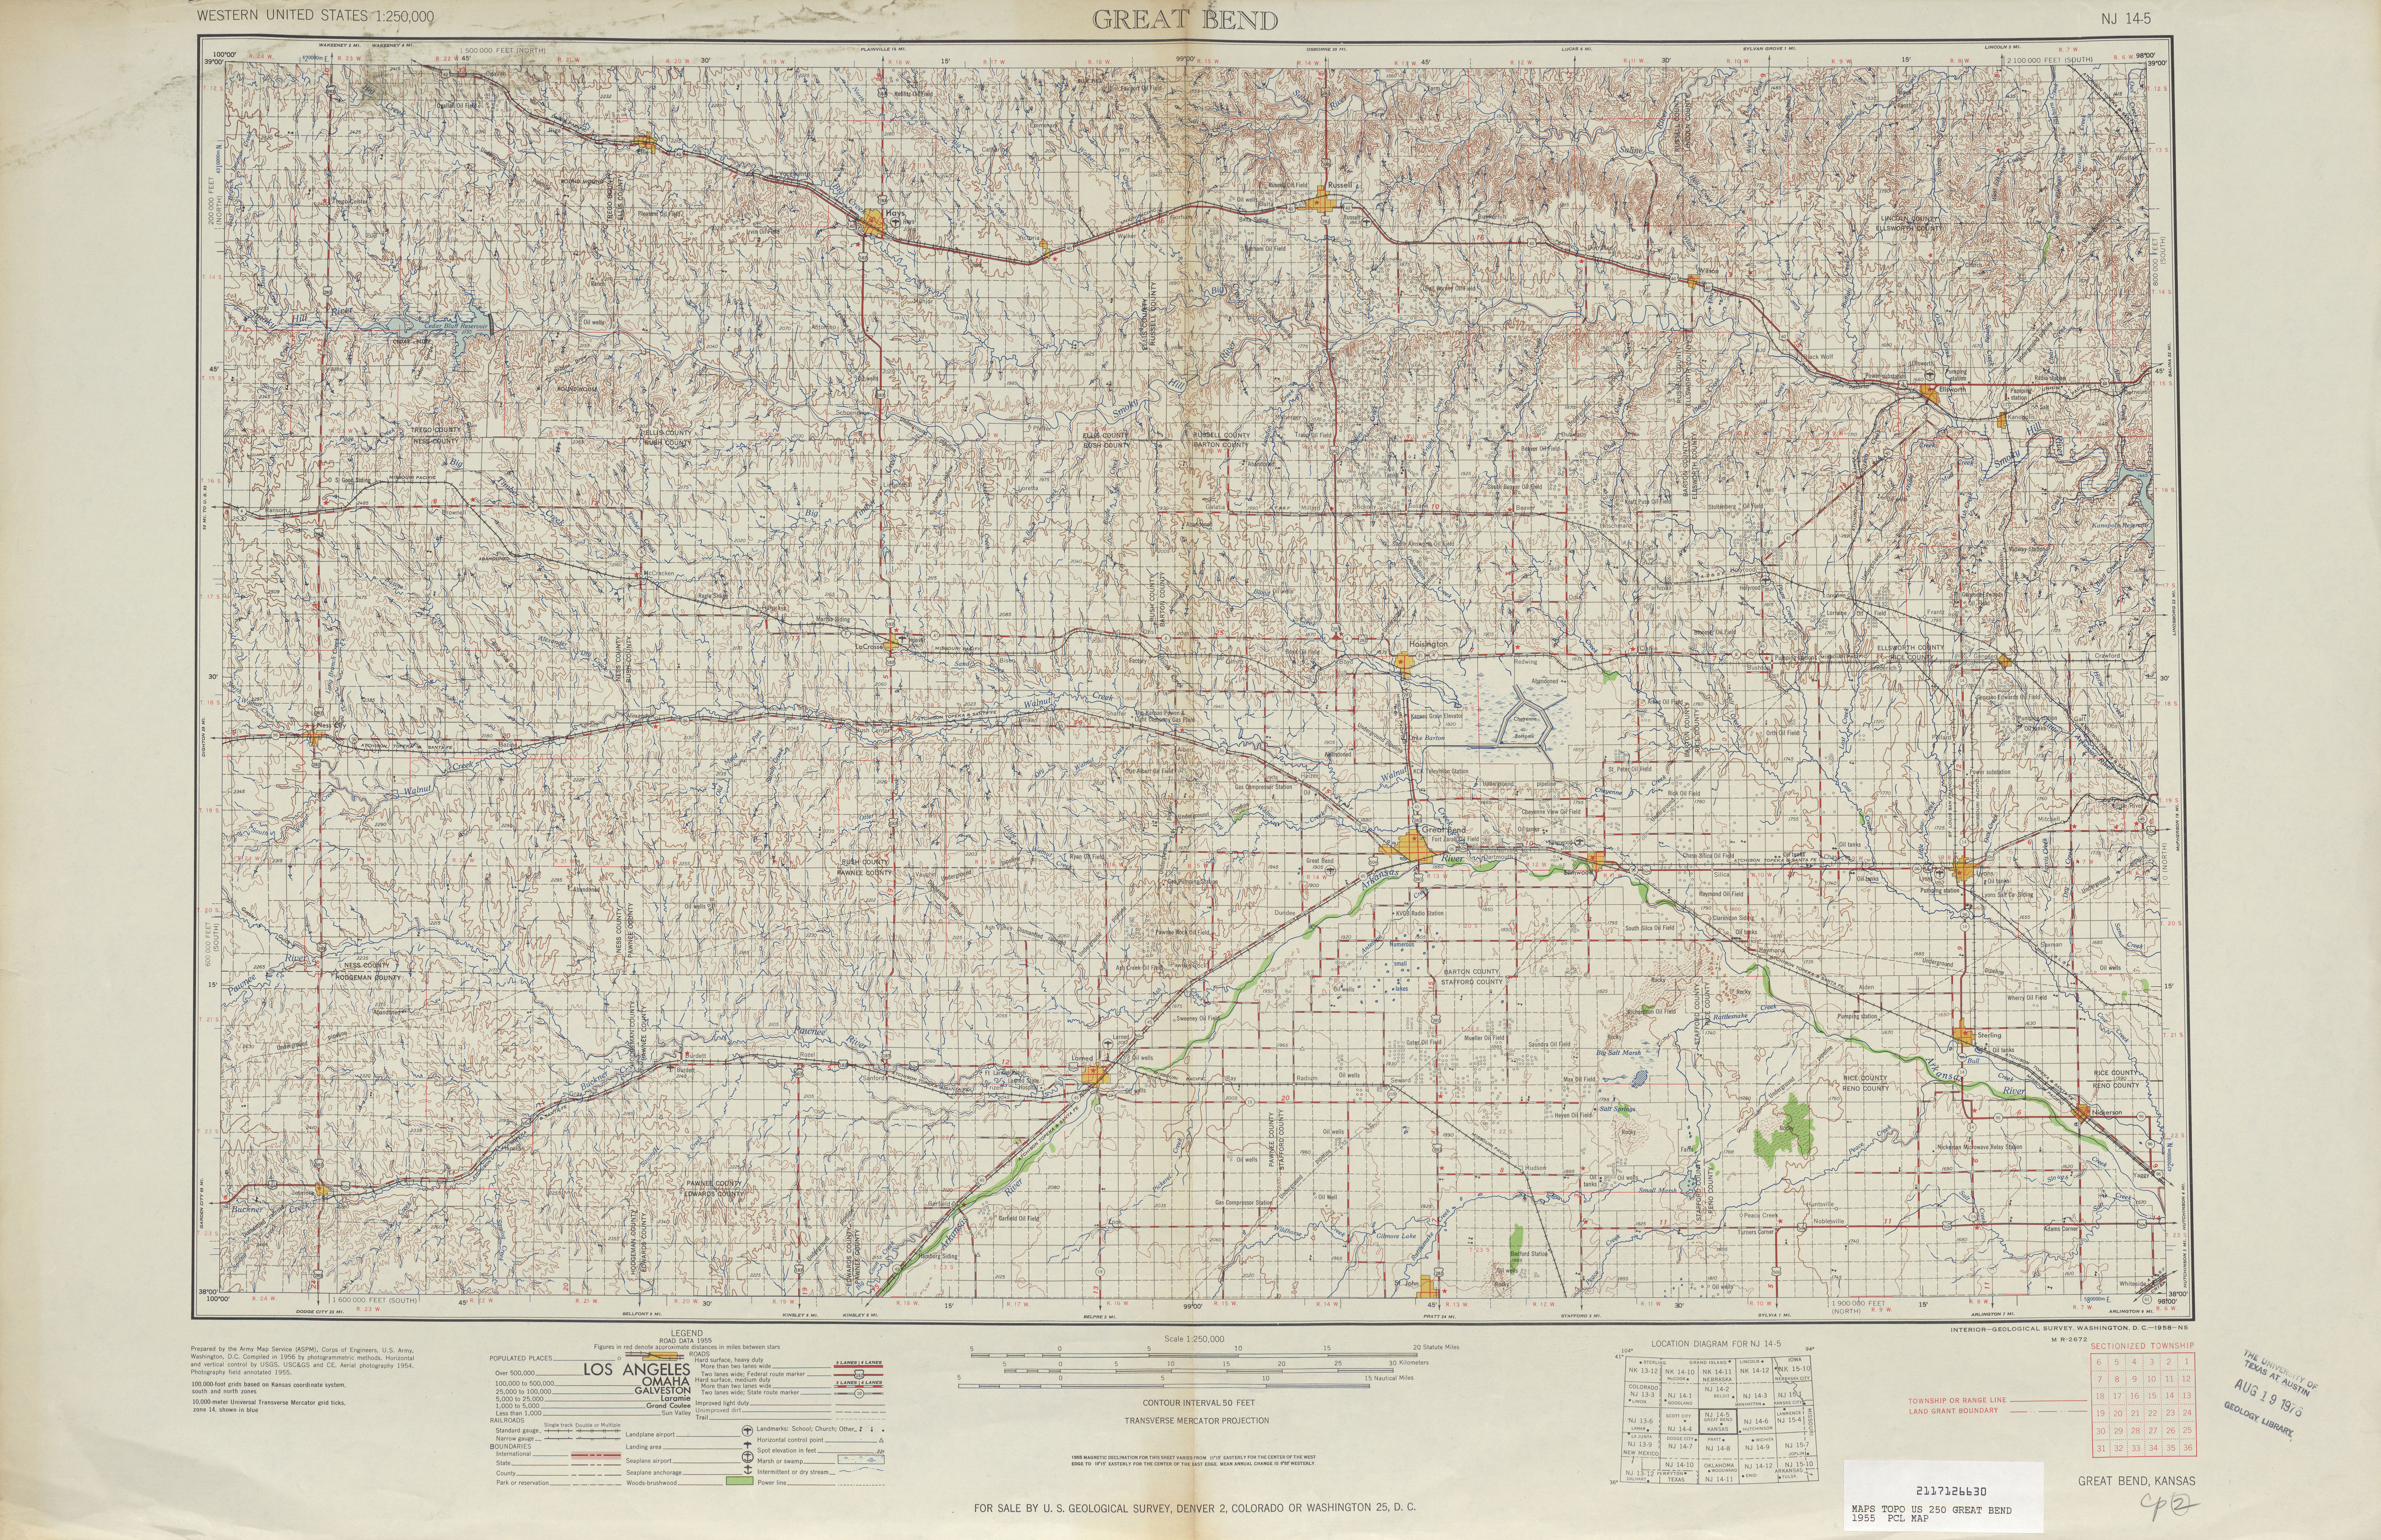 Great Bend Topographic Map Sheet, United States 1955